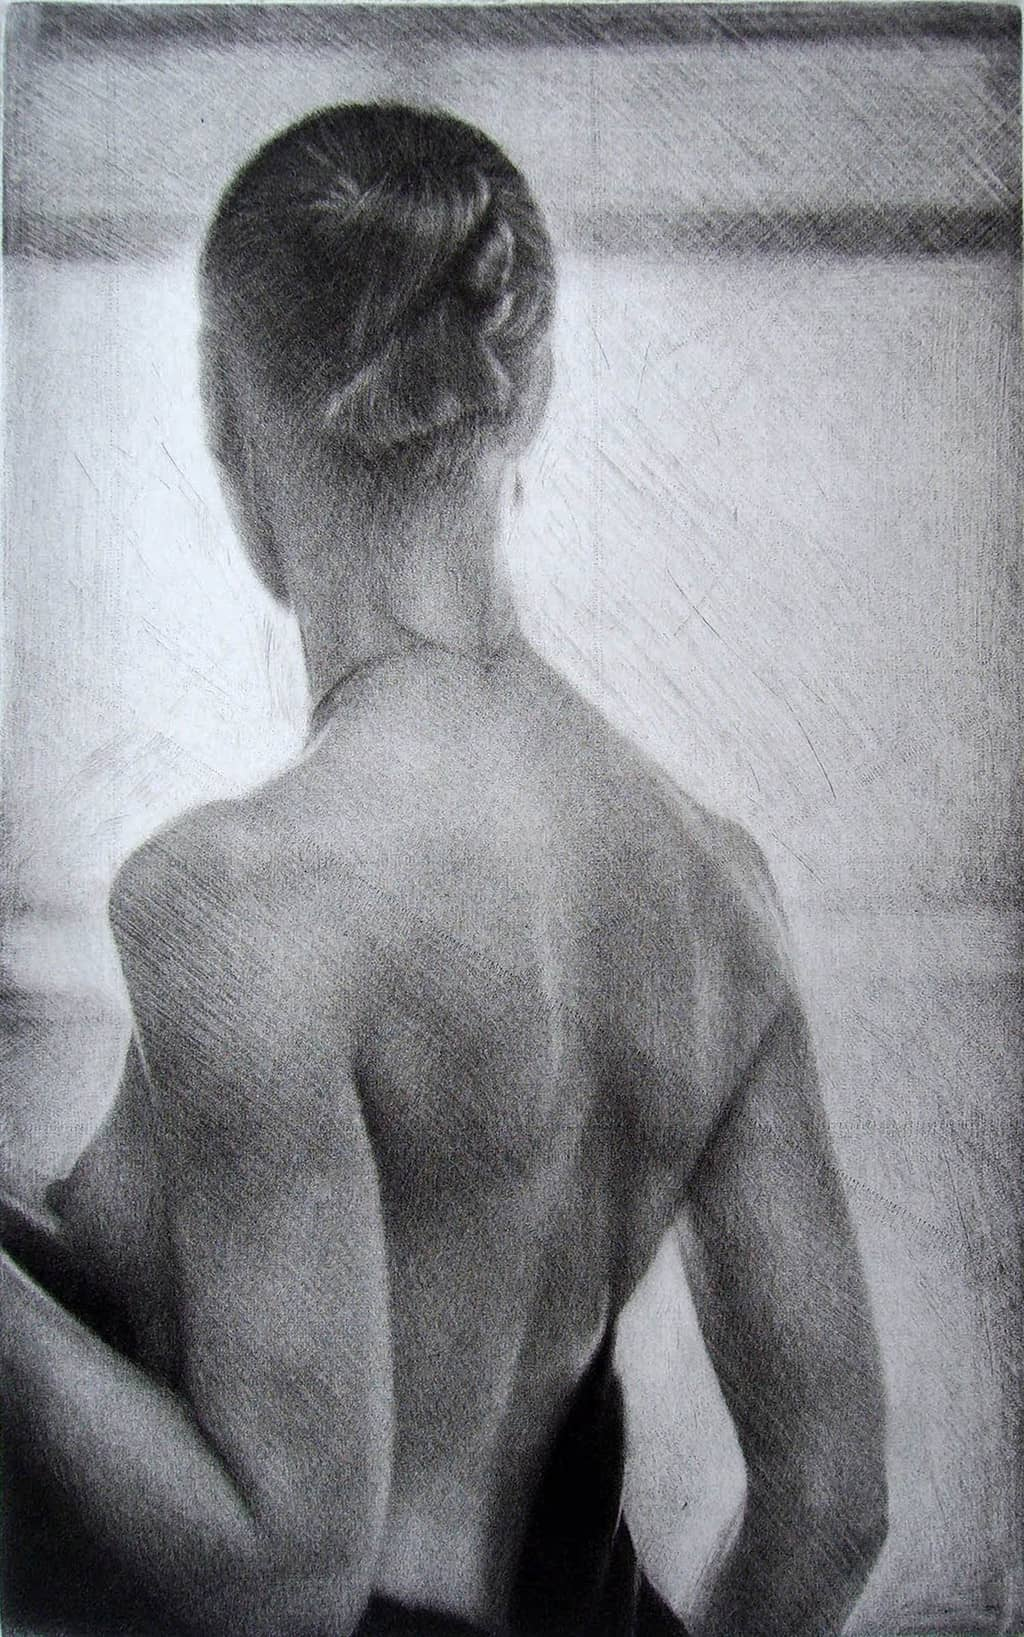 """""""Sun"""" 2 - Back view of a female model wrapping herself in a shawl. Original print mezzotint by painter-printmaker Marina Kim"""